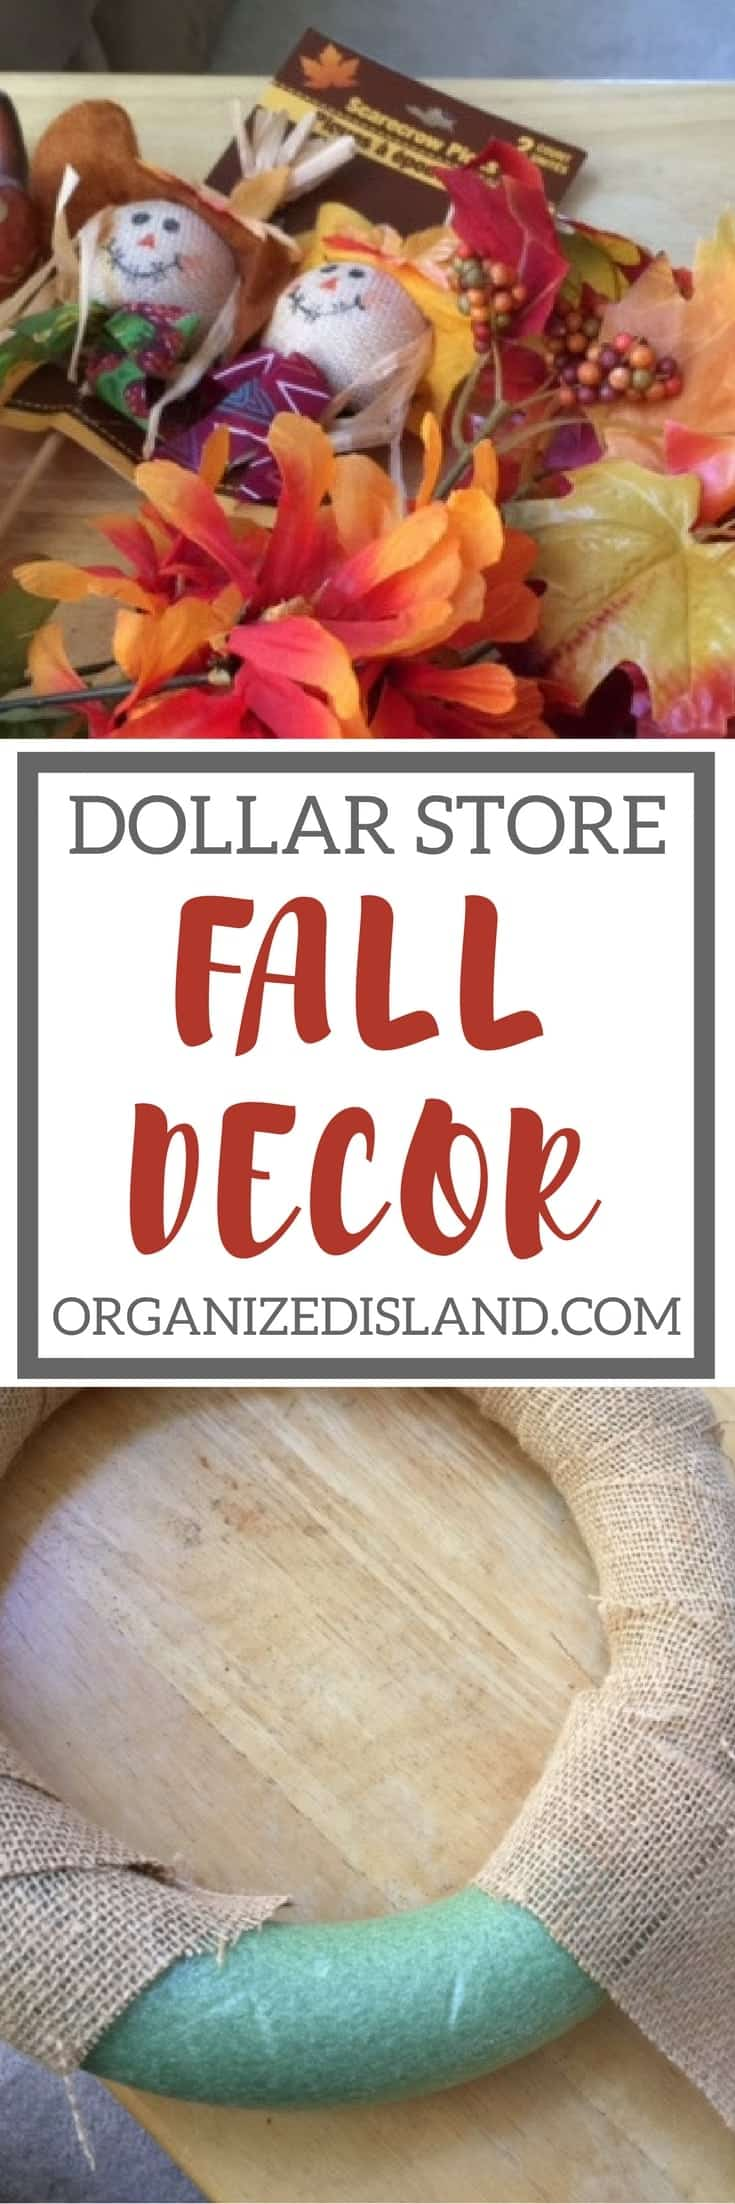 20 minute dollar store decor looking for some cheap fall decor ideas this site has tons of ideas izmirmasajfo Choice Image